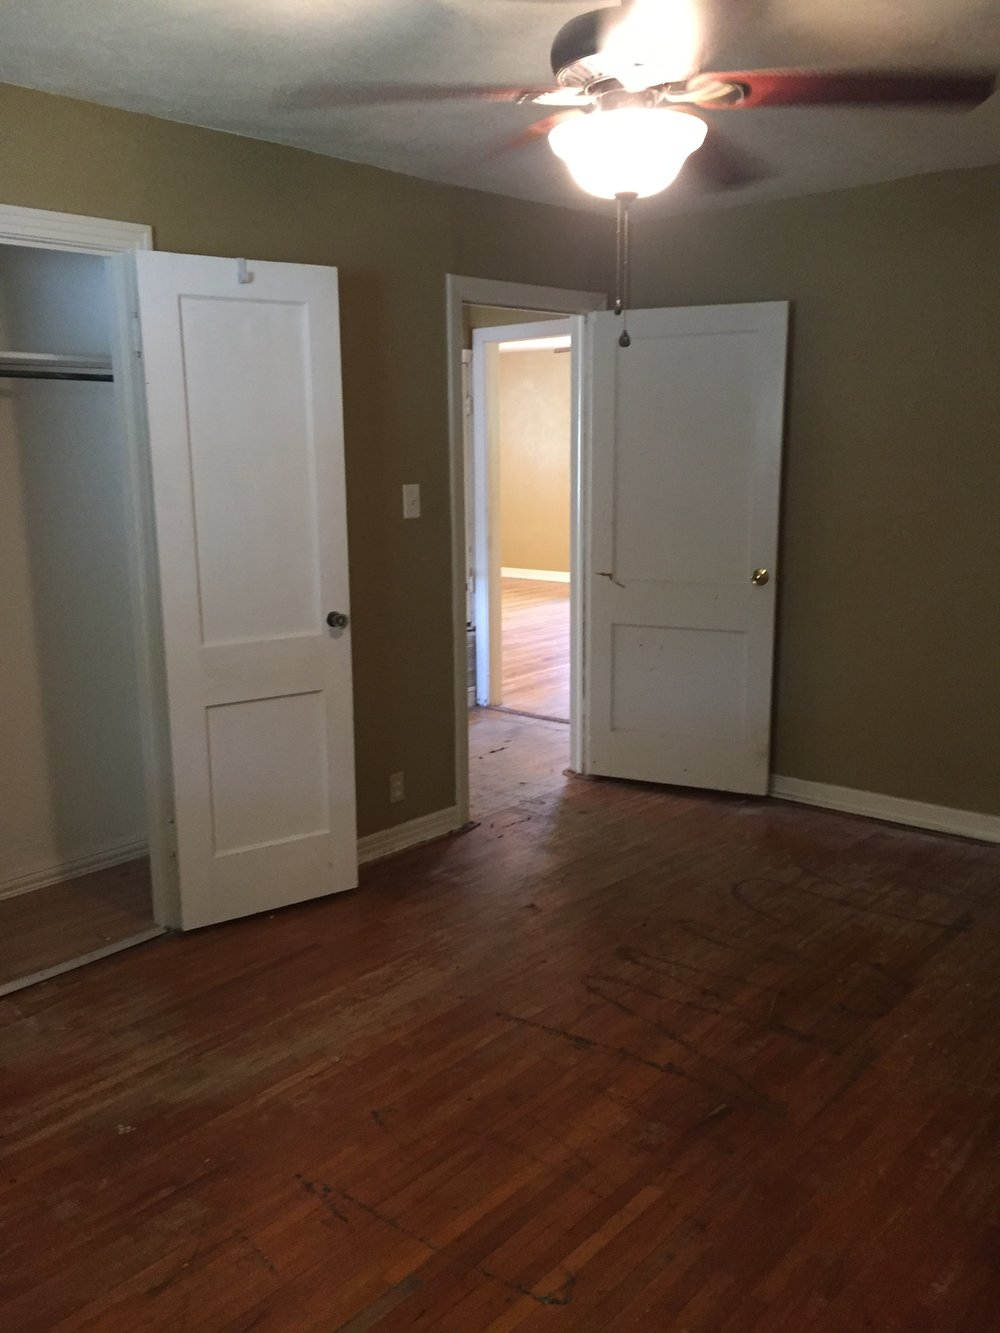 Standing in the northeast corner looking to the bedroom door (and the living room beyond) on the day we took possession. The closet is small, but I'm looking forward to finding a savvy organization strategy.